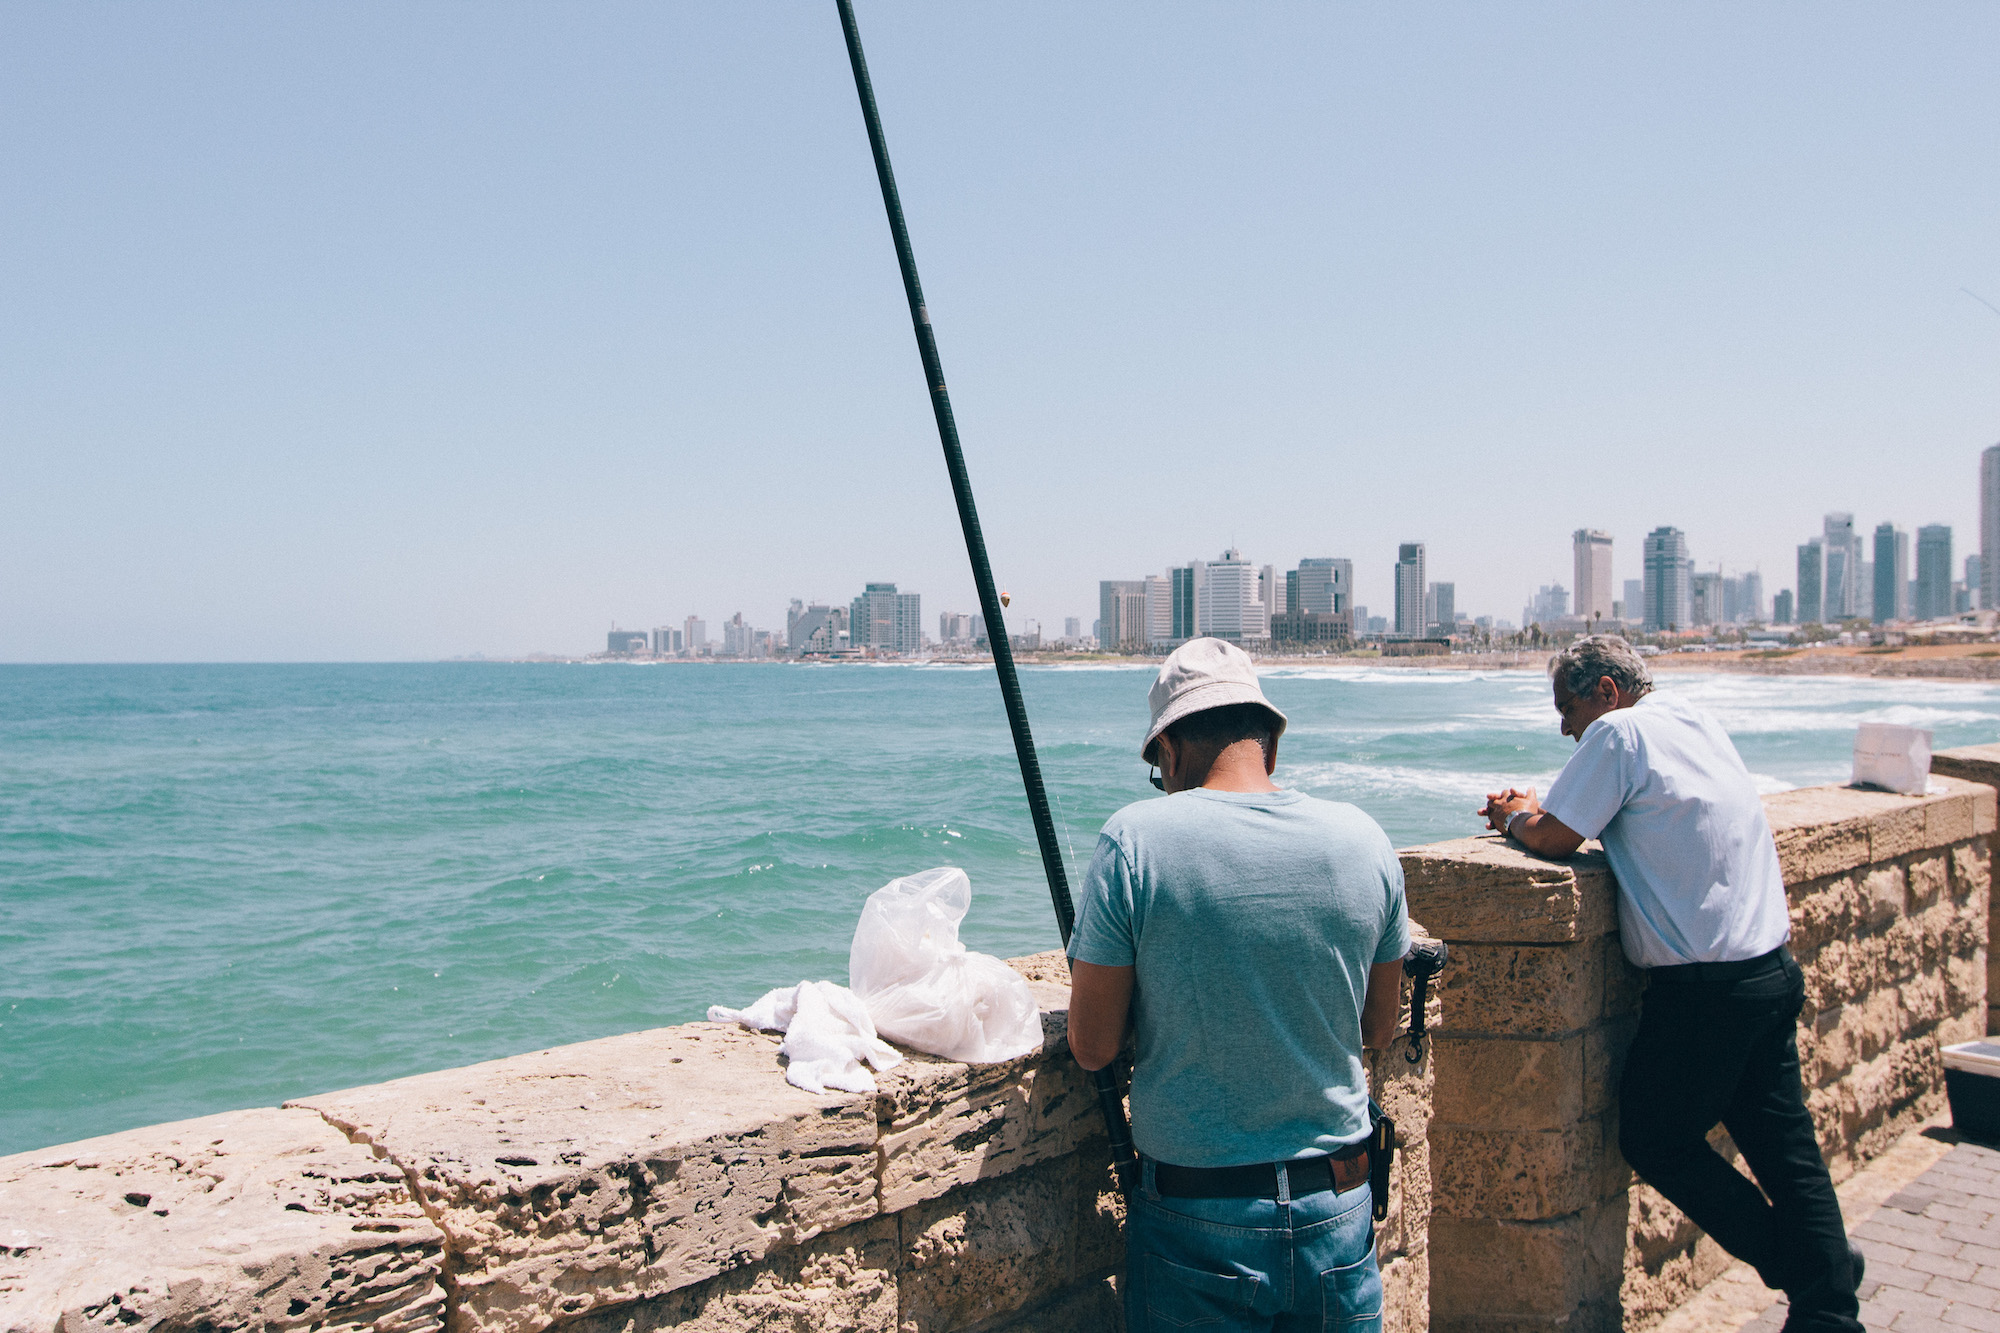 Tel Aviv - Day 1 was spent in Tel Aviv and Jaffa port, before we drove up north to Mount Carmel. Tel Aviv is a busy city that can feel quite European at times. It has large beaches, a few borderline skyscrapers and some great places for coffee and drinks.